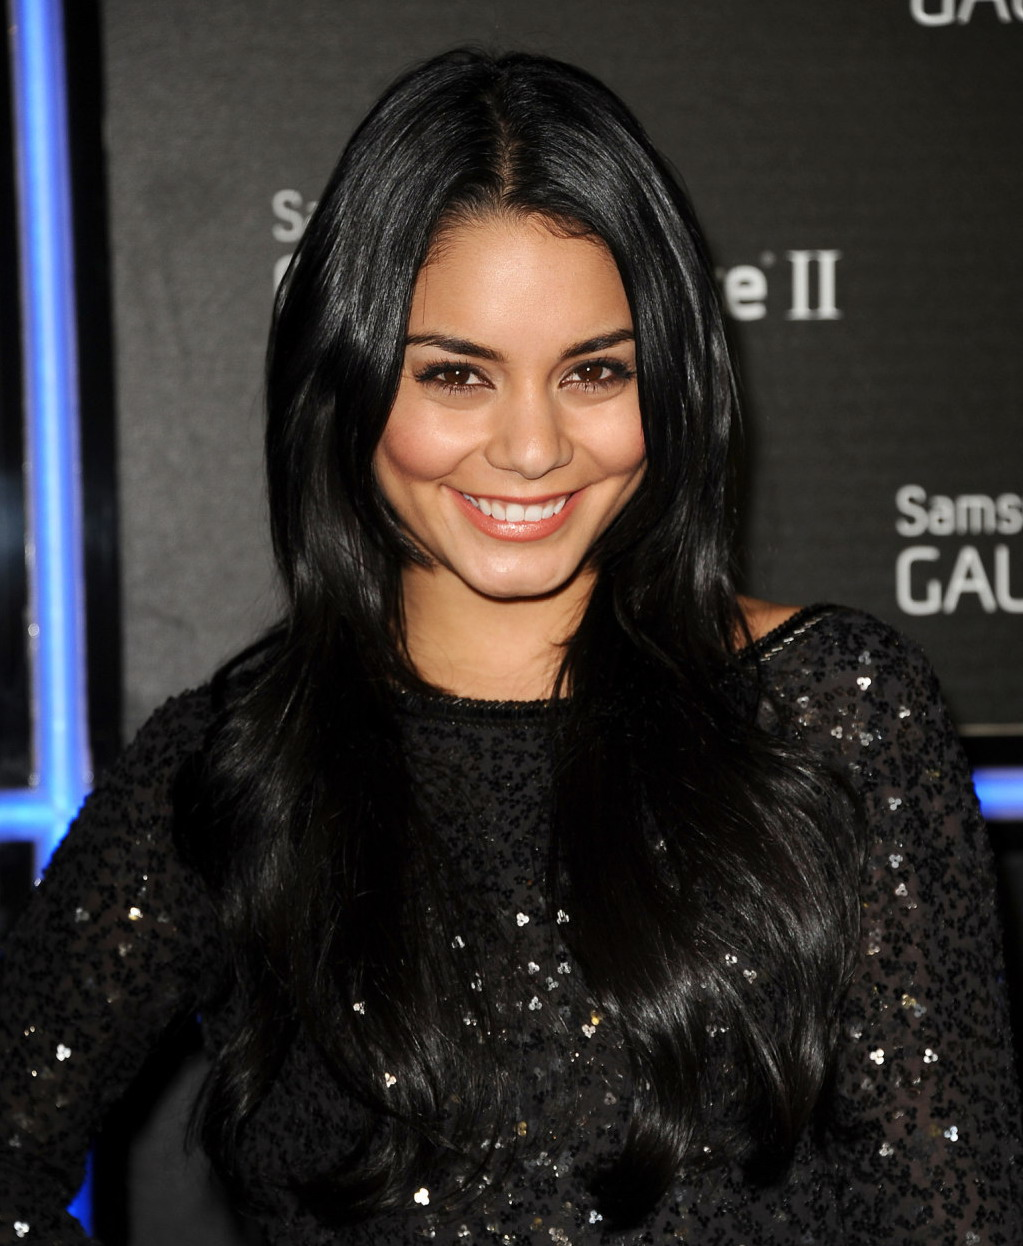 Vanessa Hudgens Black Out Lattouf Hair And Day Spa